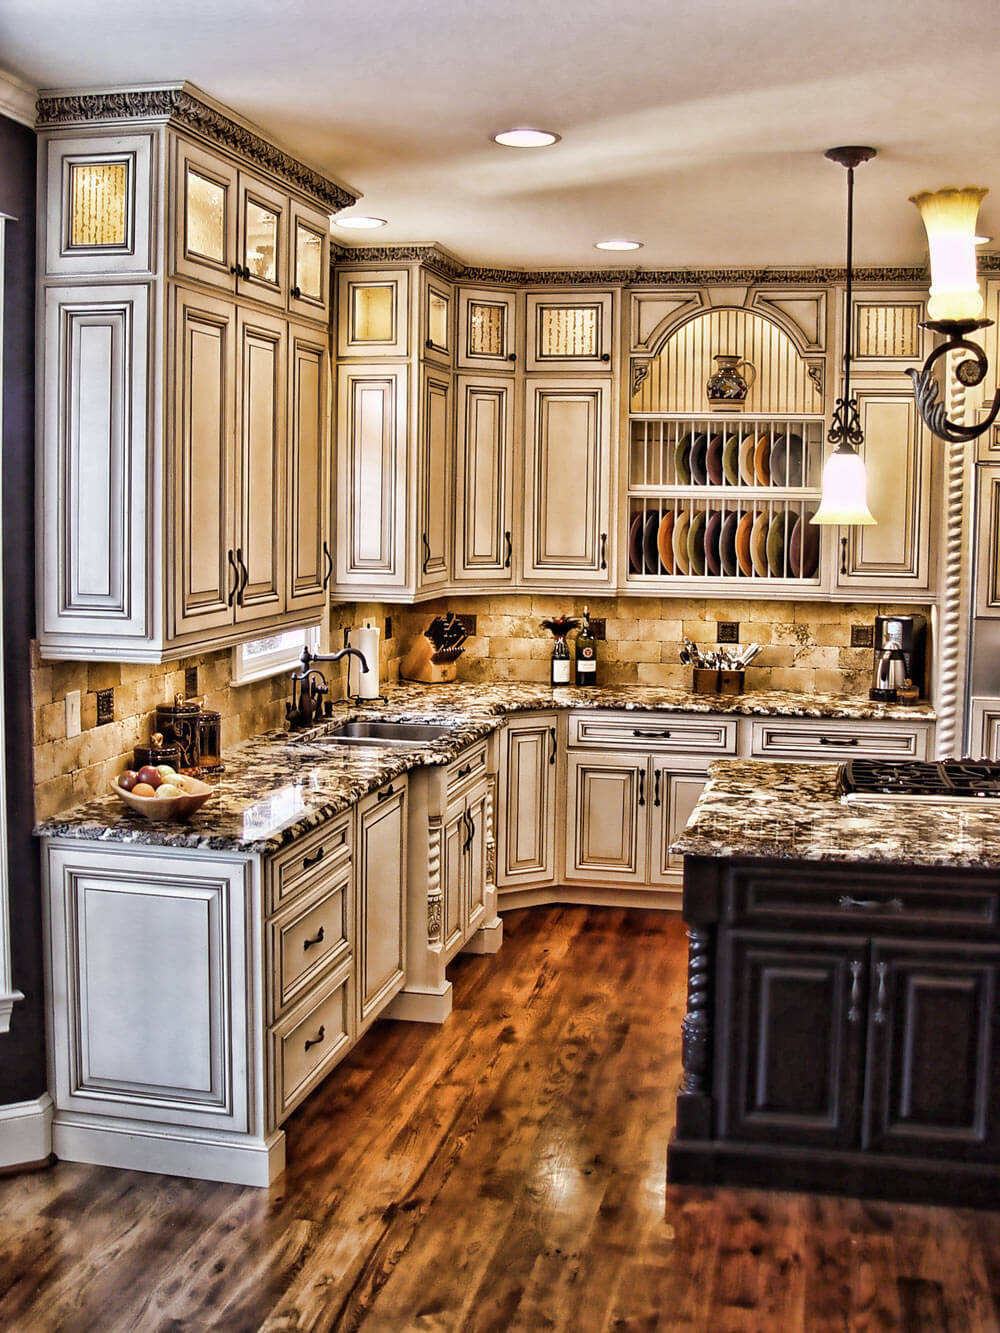 best rustic kitchen cabinets ideas rustic kitchen cabinets Maison Chic Rustic Kitchen Cabinet Designs